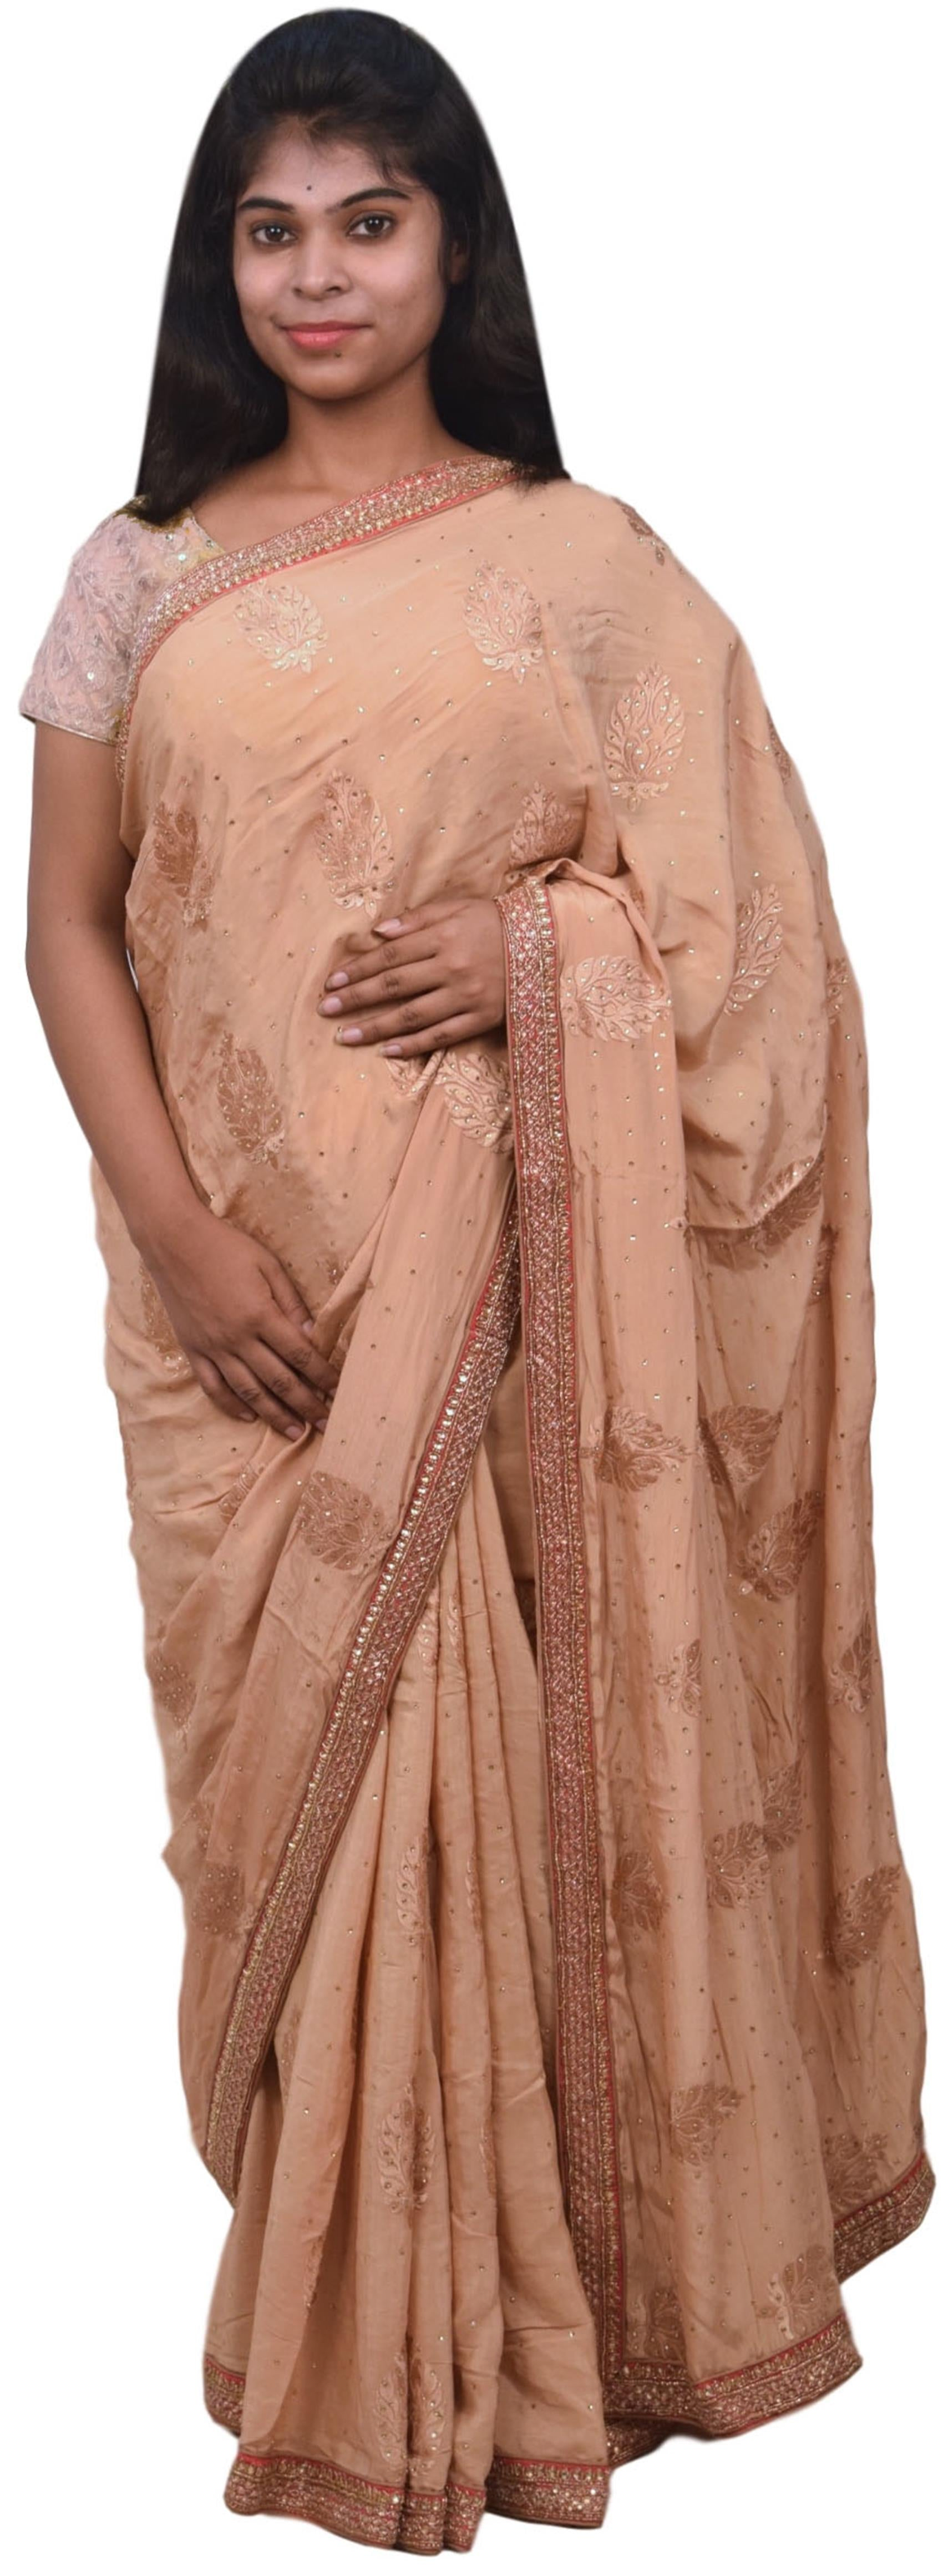 Beige Designer Wedding Partywear Ethnic Bridal Pure Crepe Hand Embroidery Cutdana Thread Bullion Stone Beads Work Kolkata Women Saree Sari E284